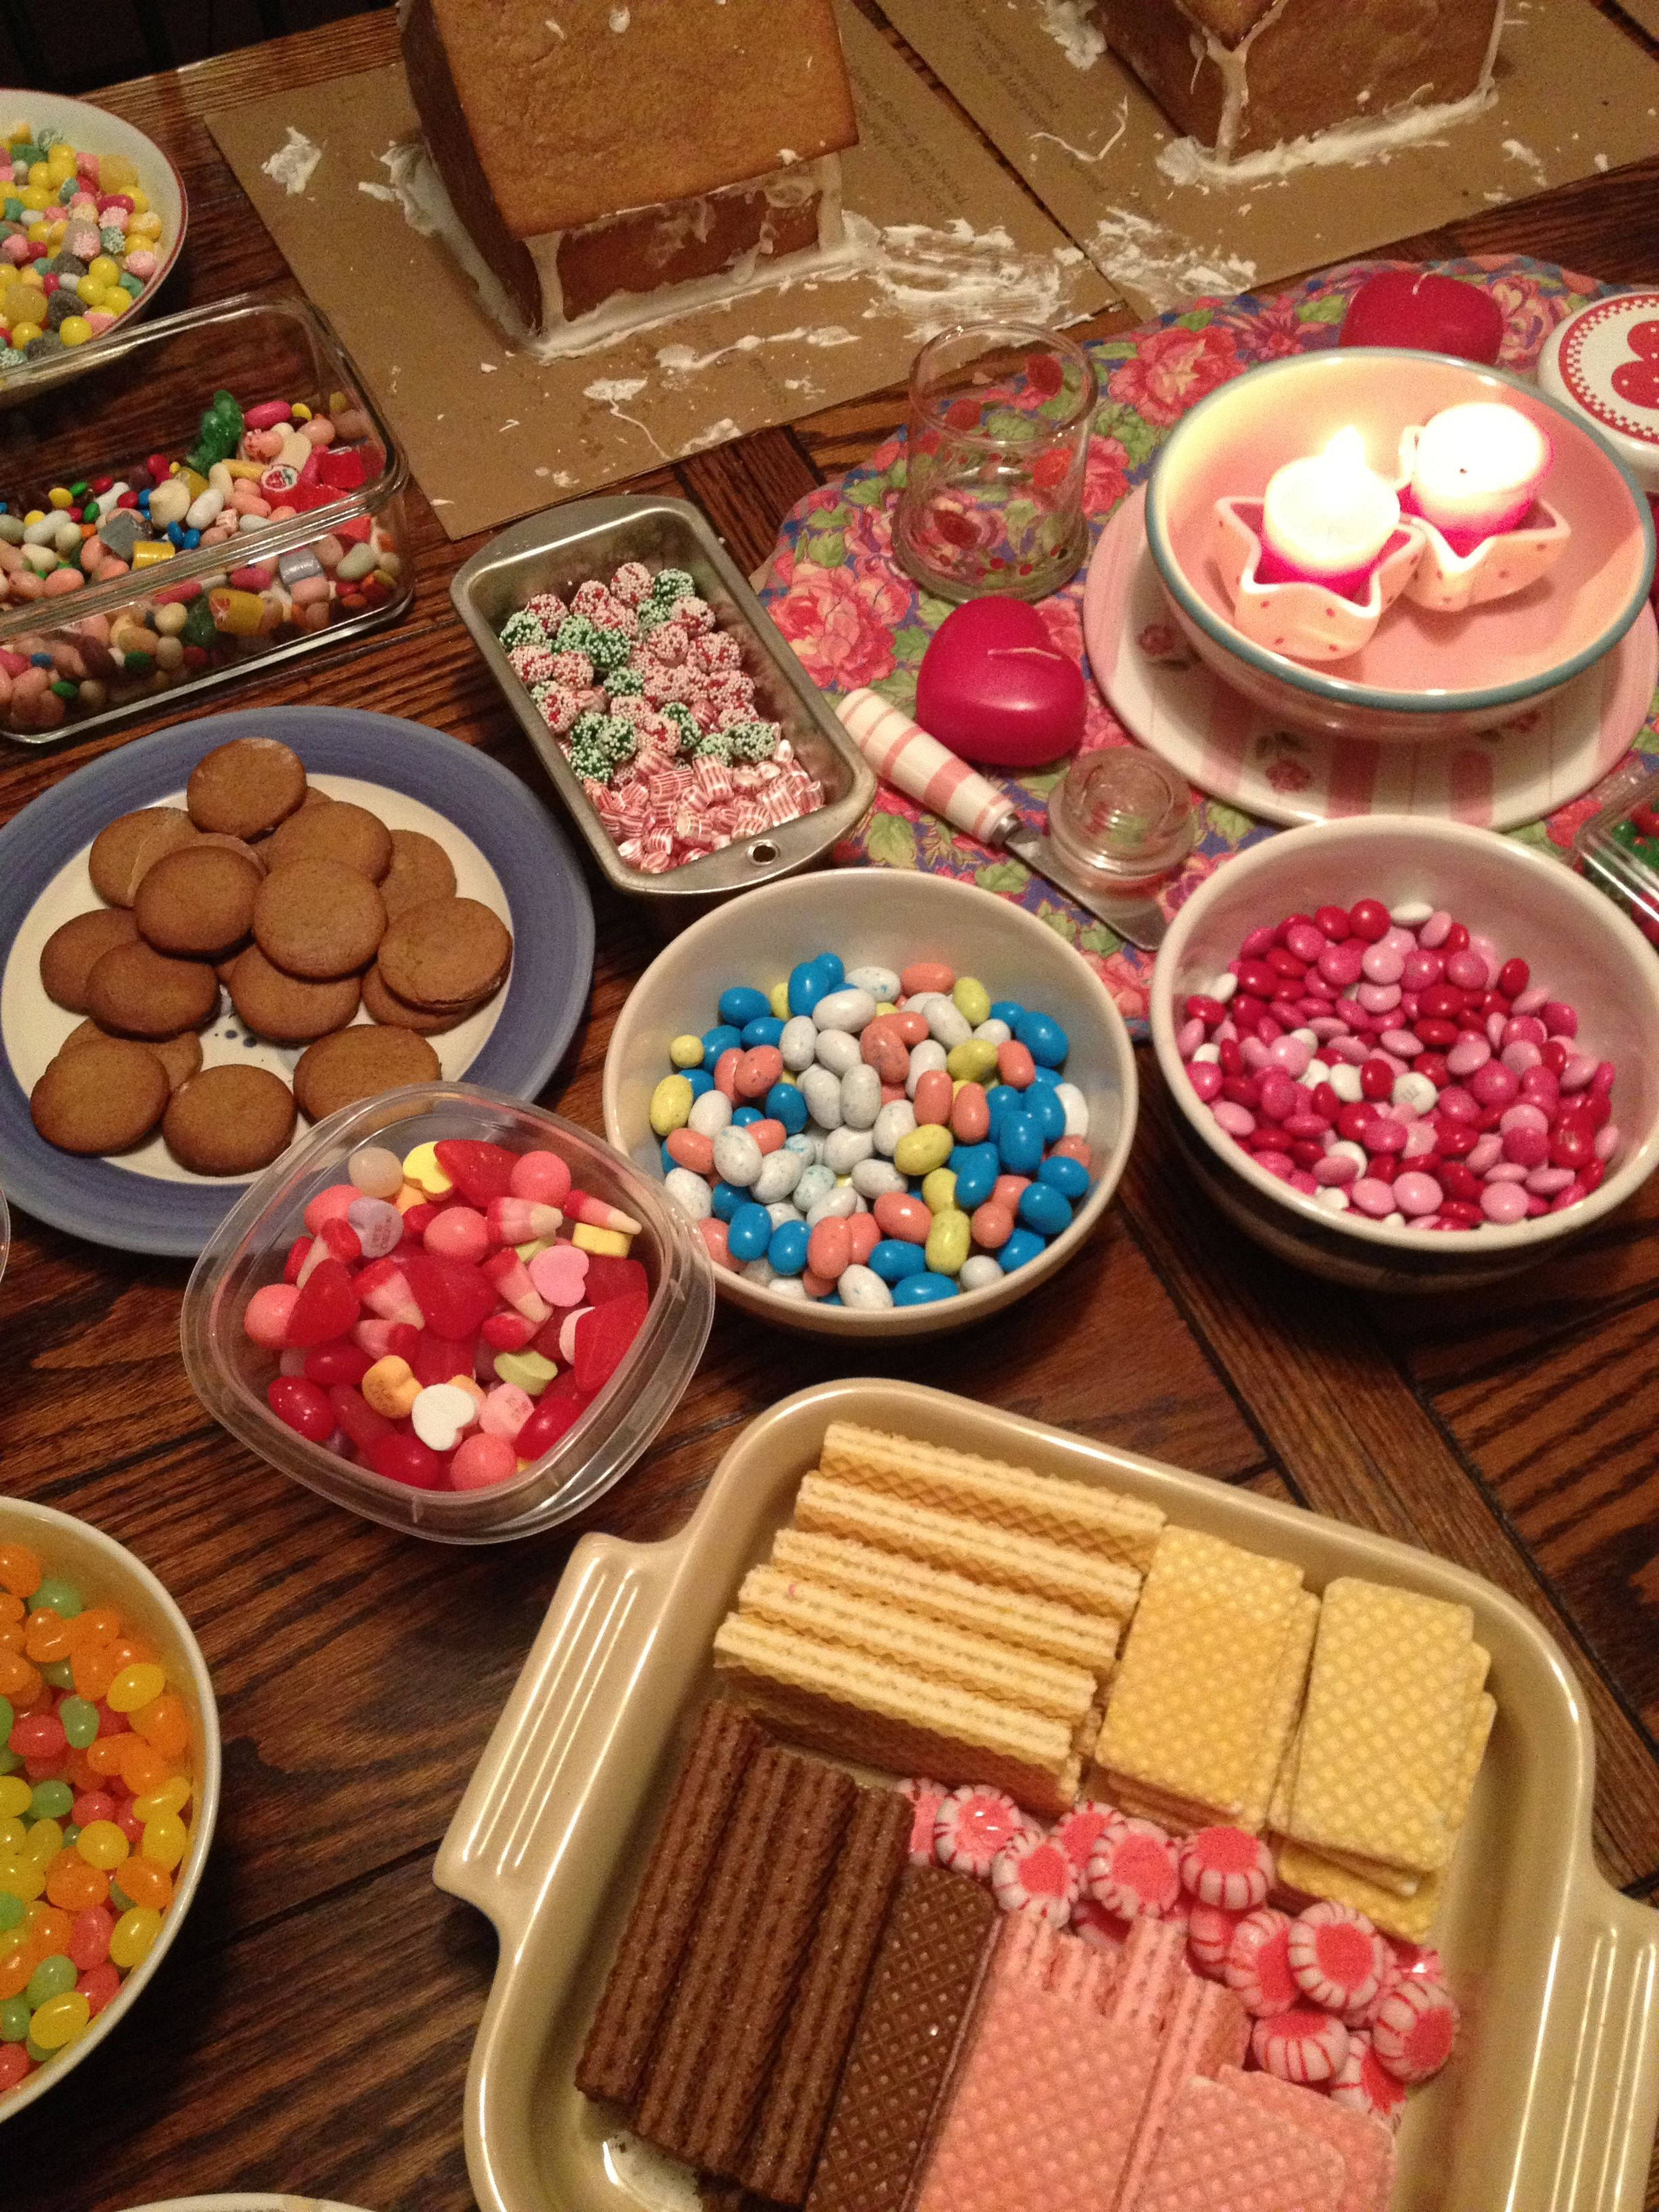 Cookie decorating party ideas - Gingerbread House Making Party Great Neighbor Idea The Neighborhood And Letsneighbor Pinned By